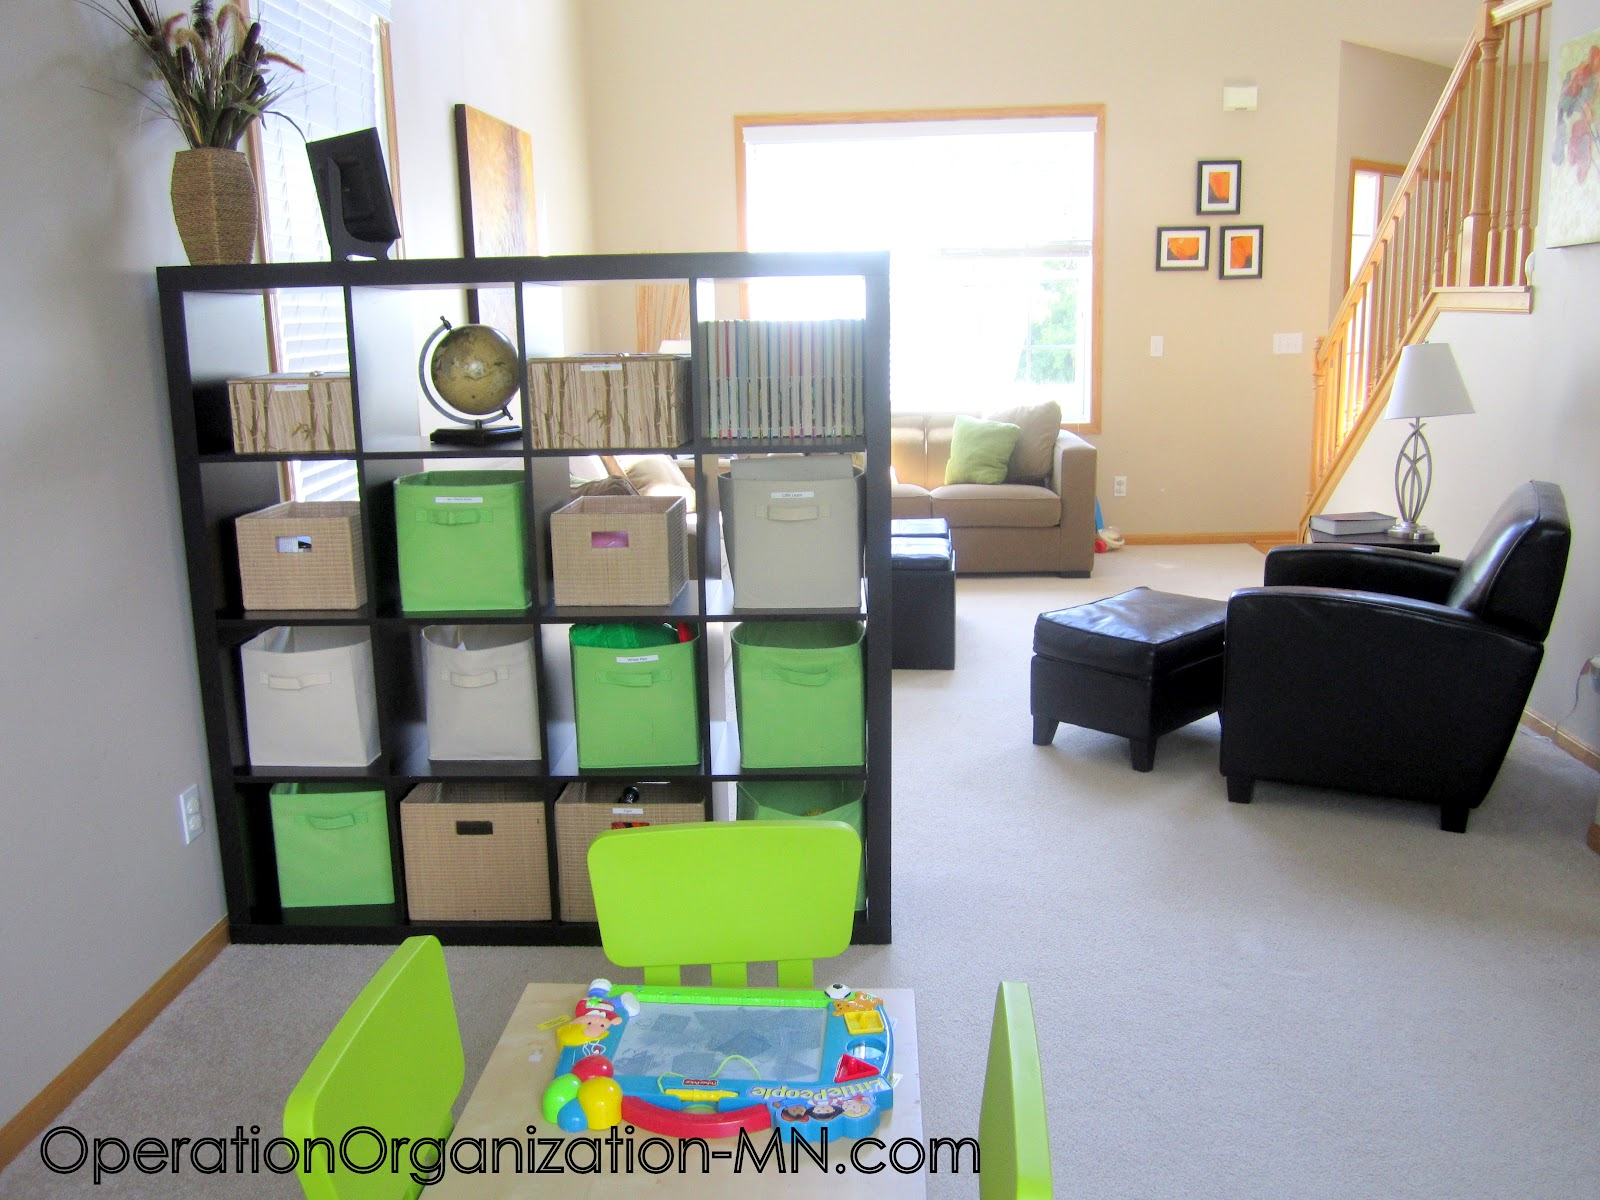 Operation organization professional organizer peachtree Small room organization